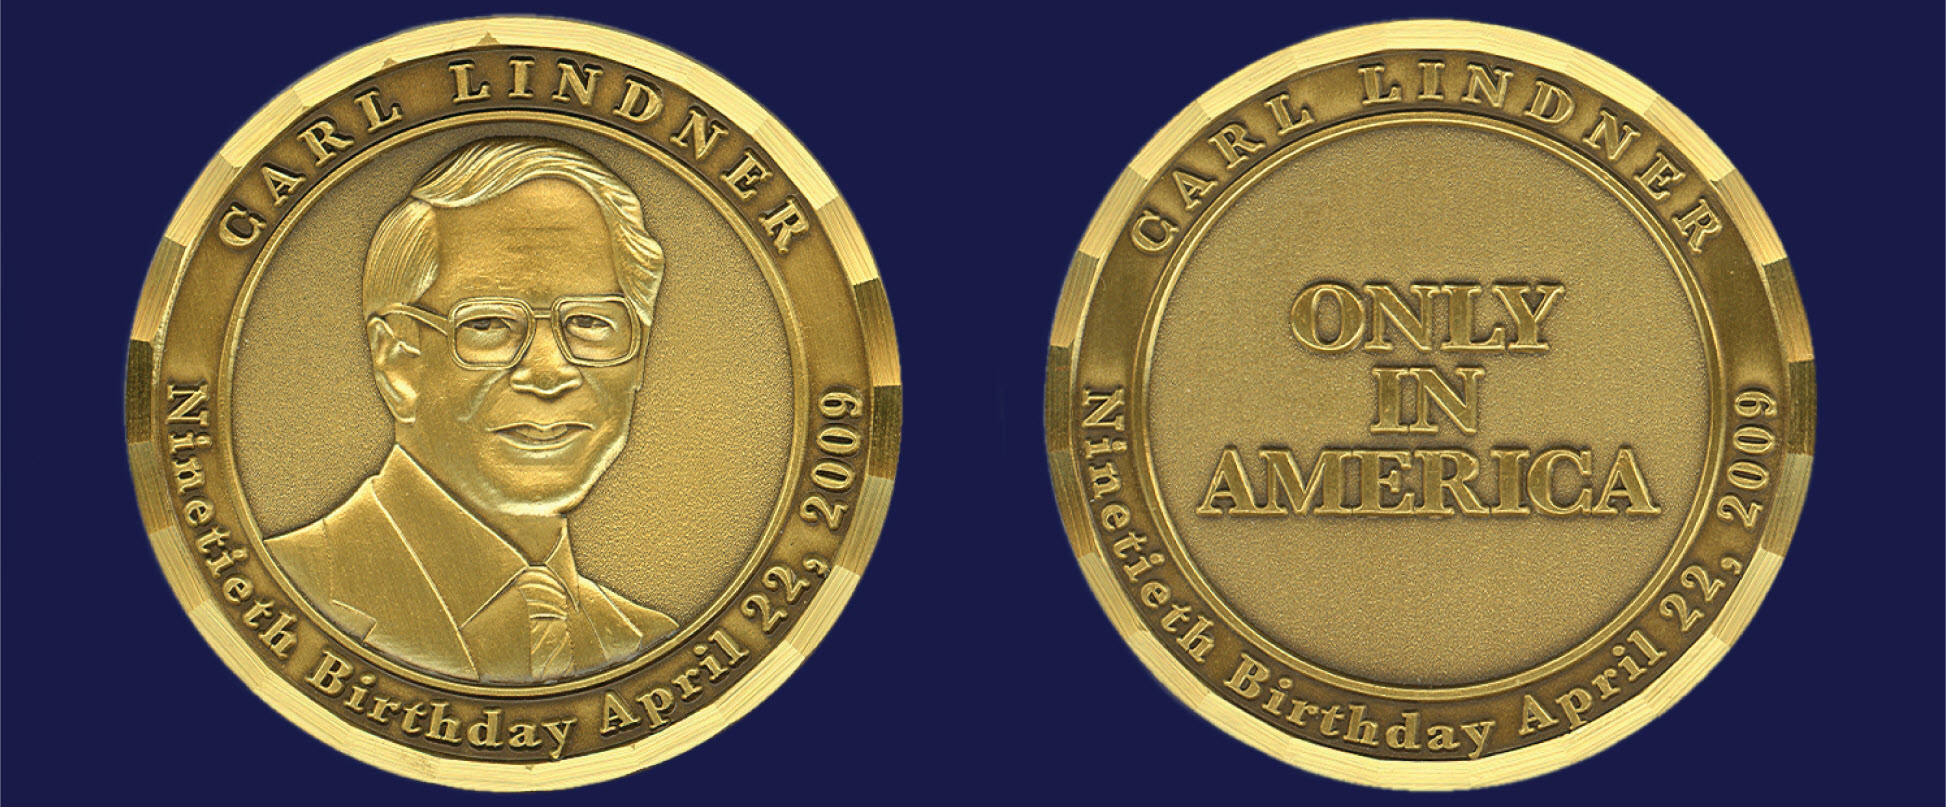 Lindner 90th Birthday Coin